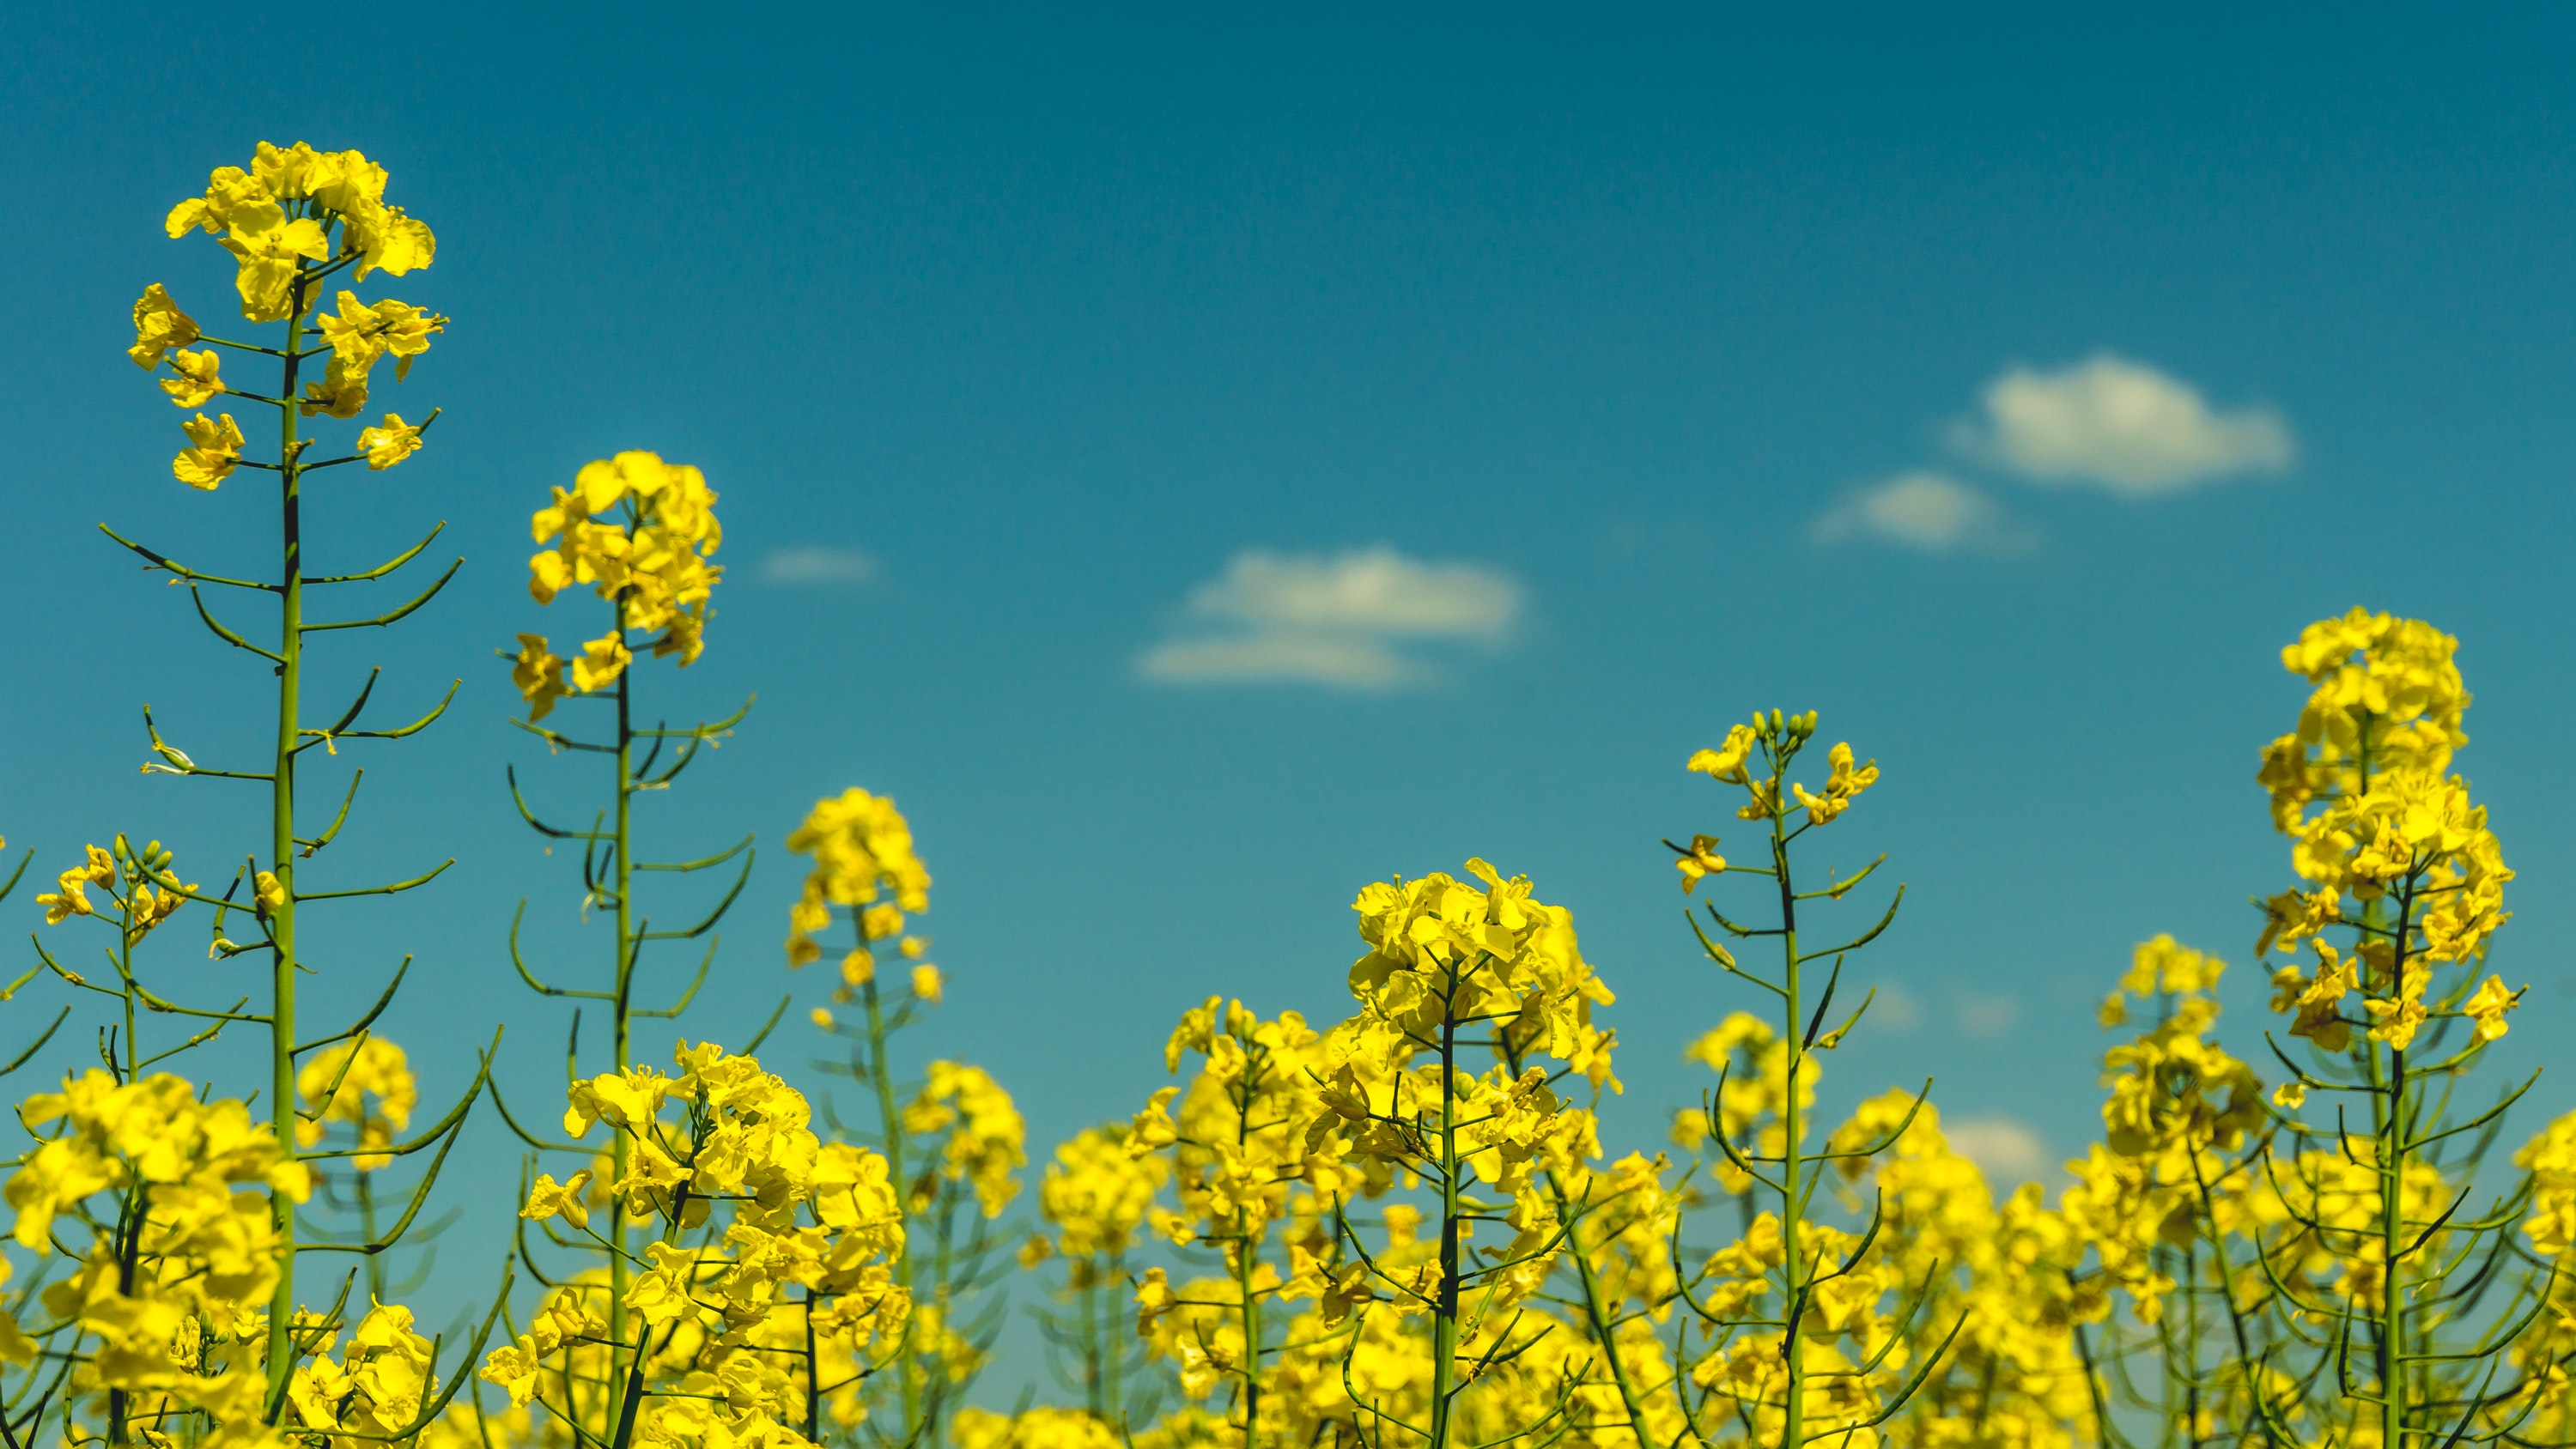 Yellow flowers under partly cloudy skies during daytime photo